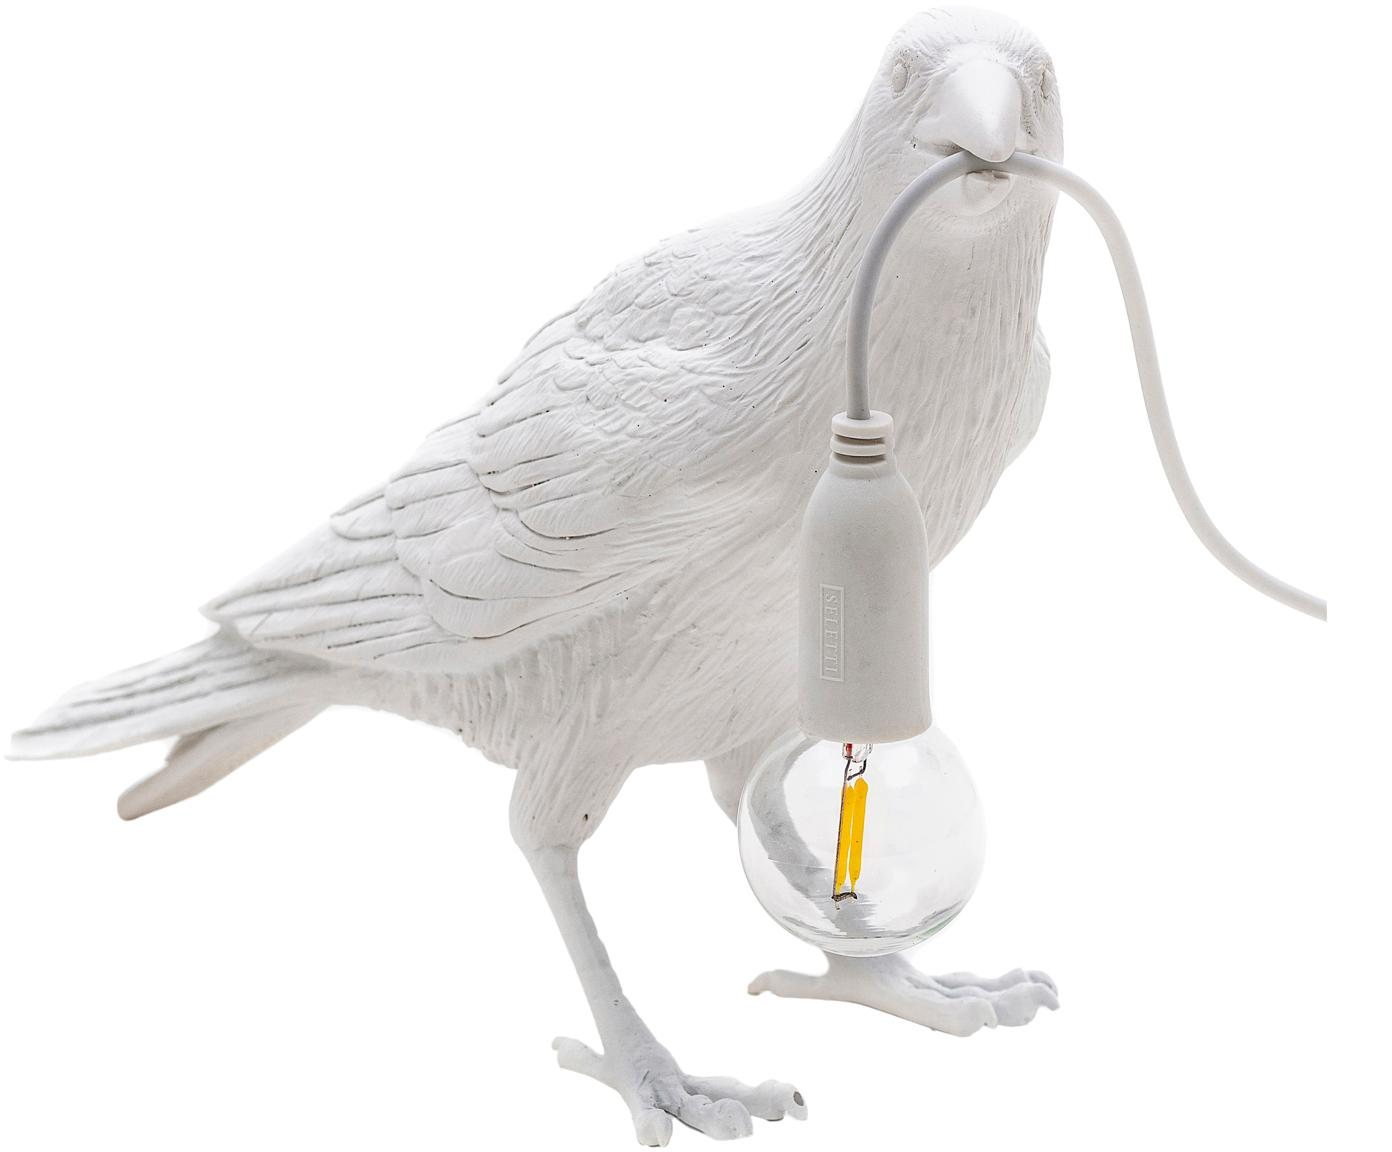 LED tafellamp Bird, Wit, 33 x 12 cm